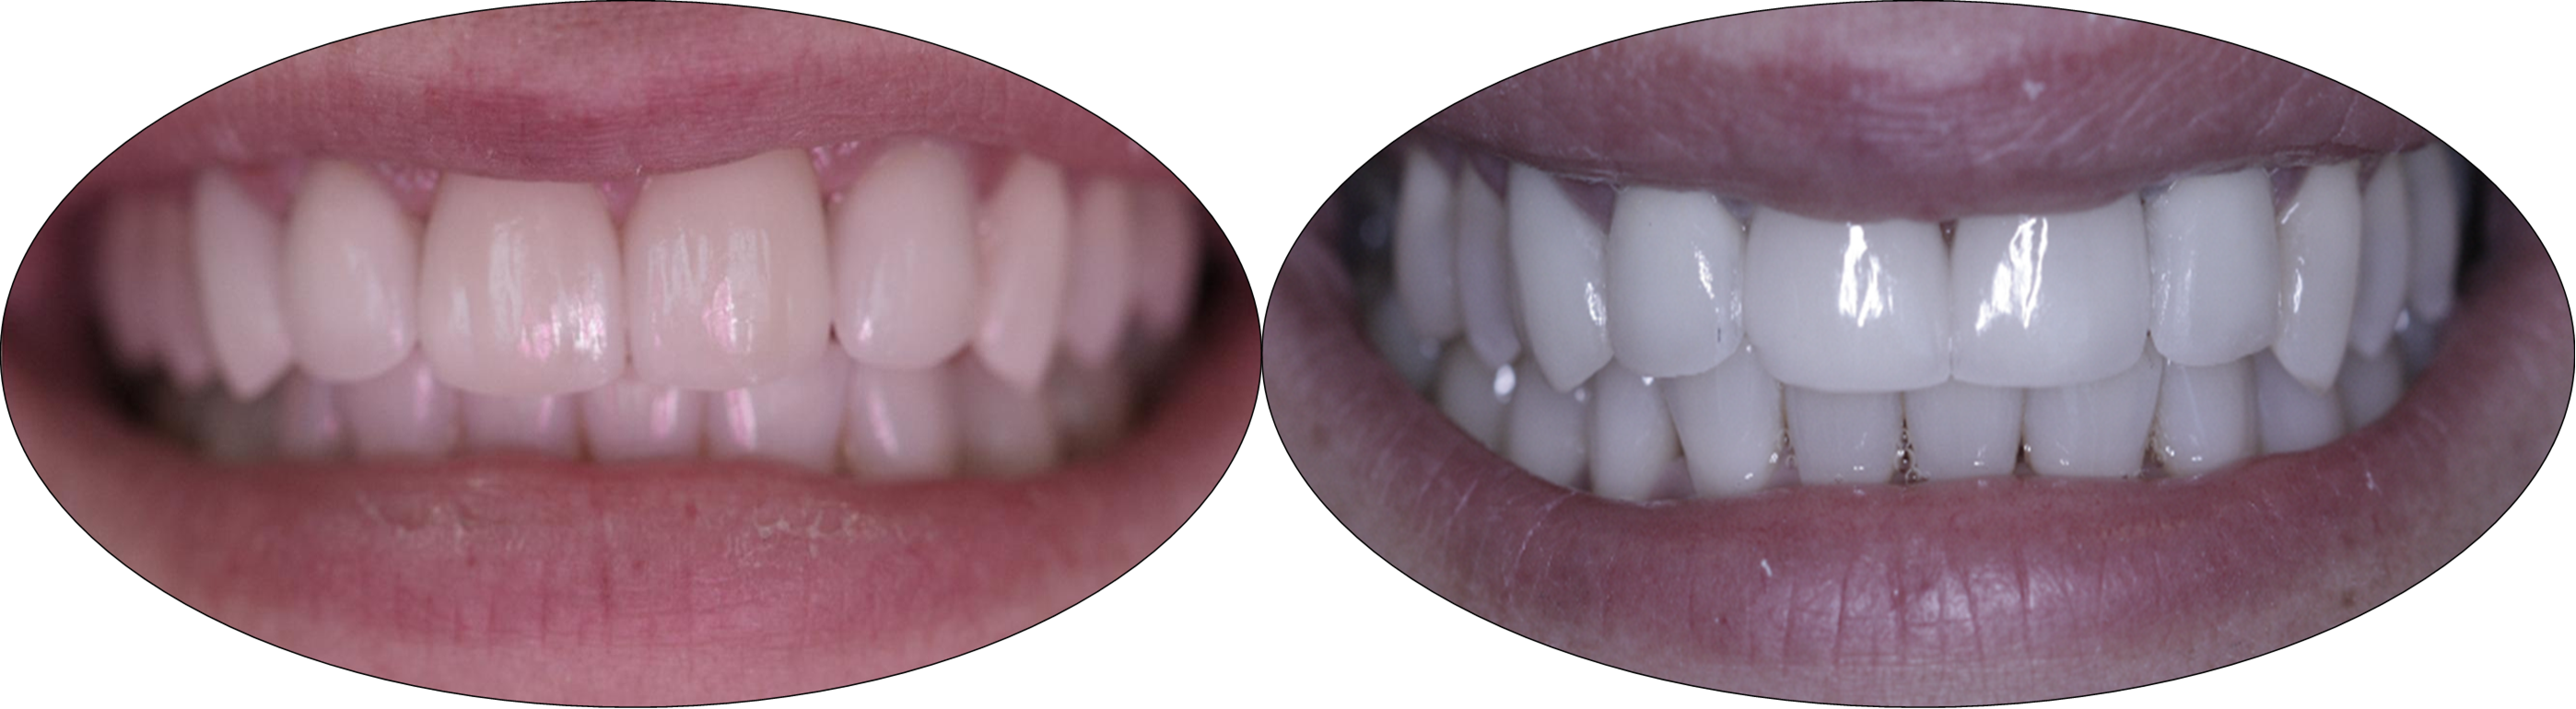 Before and after pictures of patient with porcelain veneers and crowns